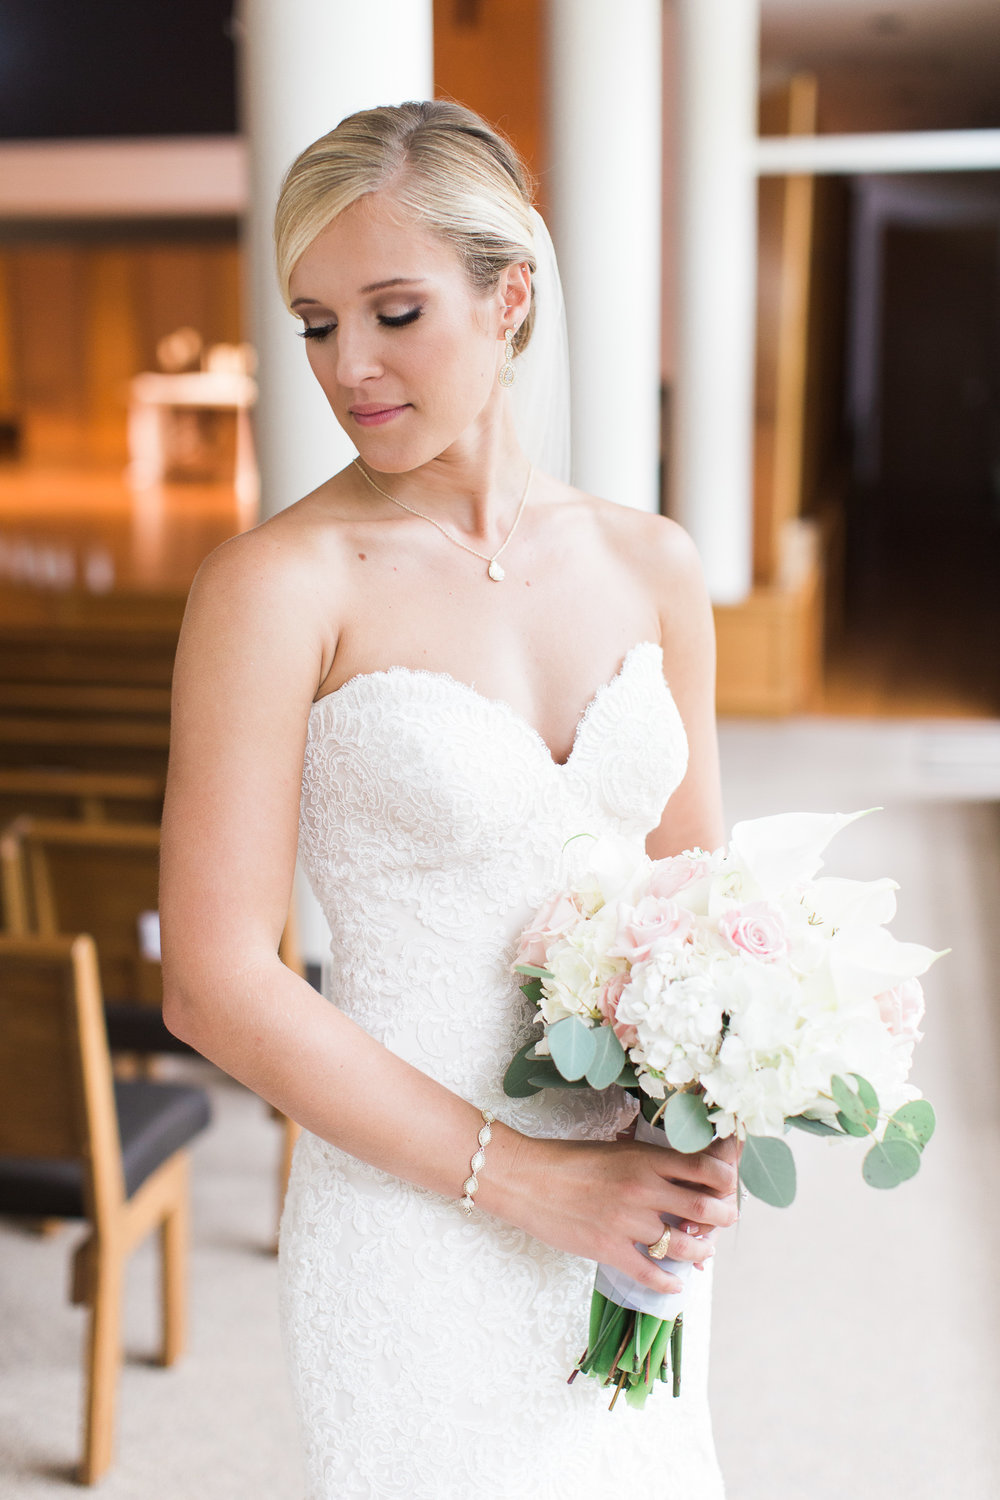 a720c-danichanceweddingkrp-28.jpg